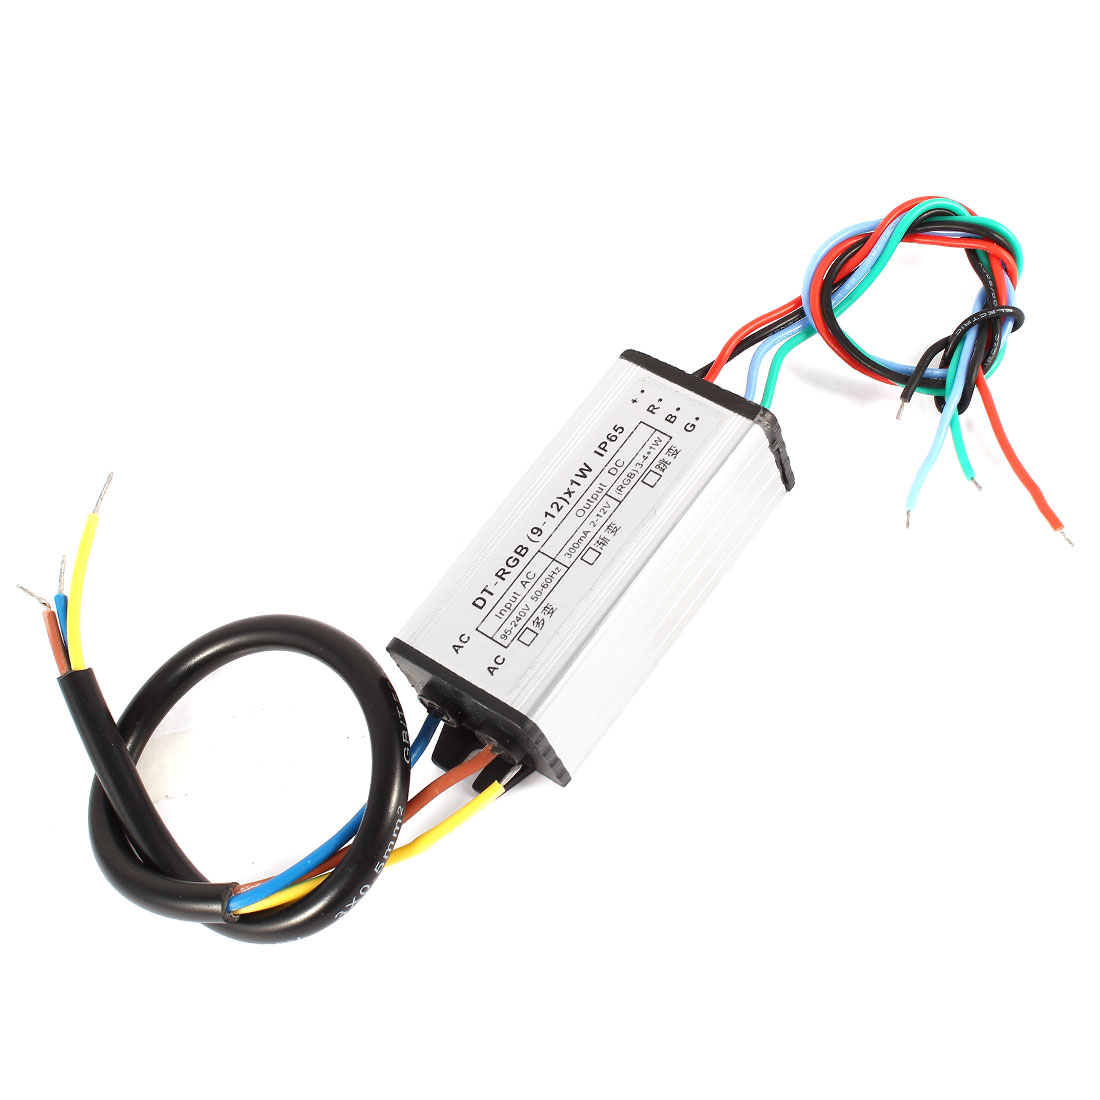 (9-12)x1W Waterproof LED Driver Transformer Power Supply for RGB Light Strip